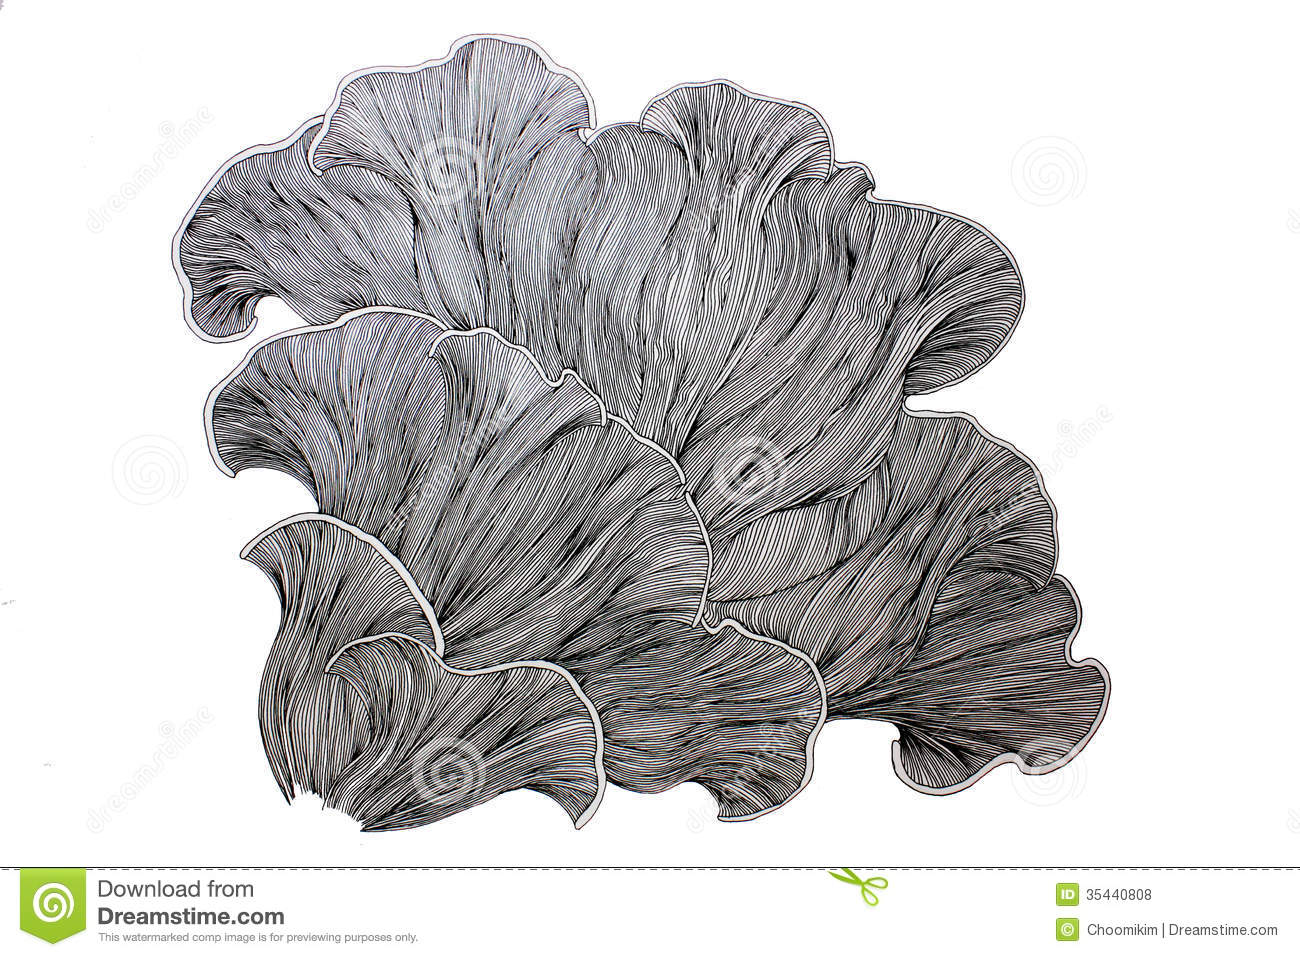 Fine Line Art : Abstract mushroom drawing stock photo. image of lines 35440808